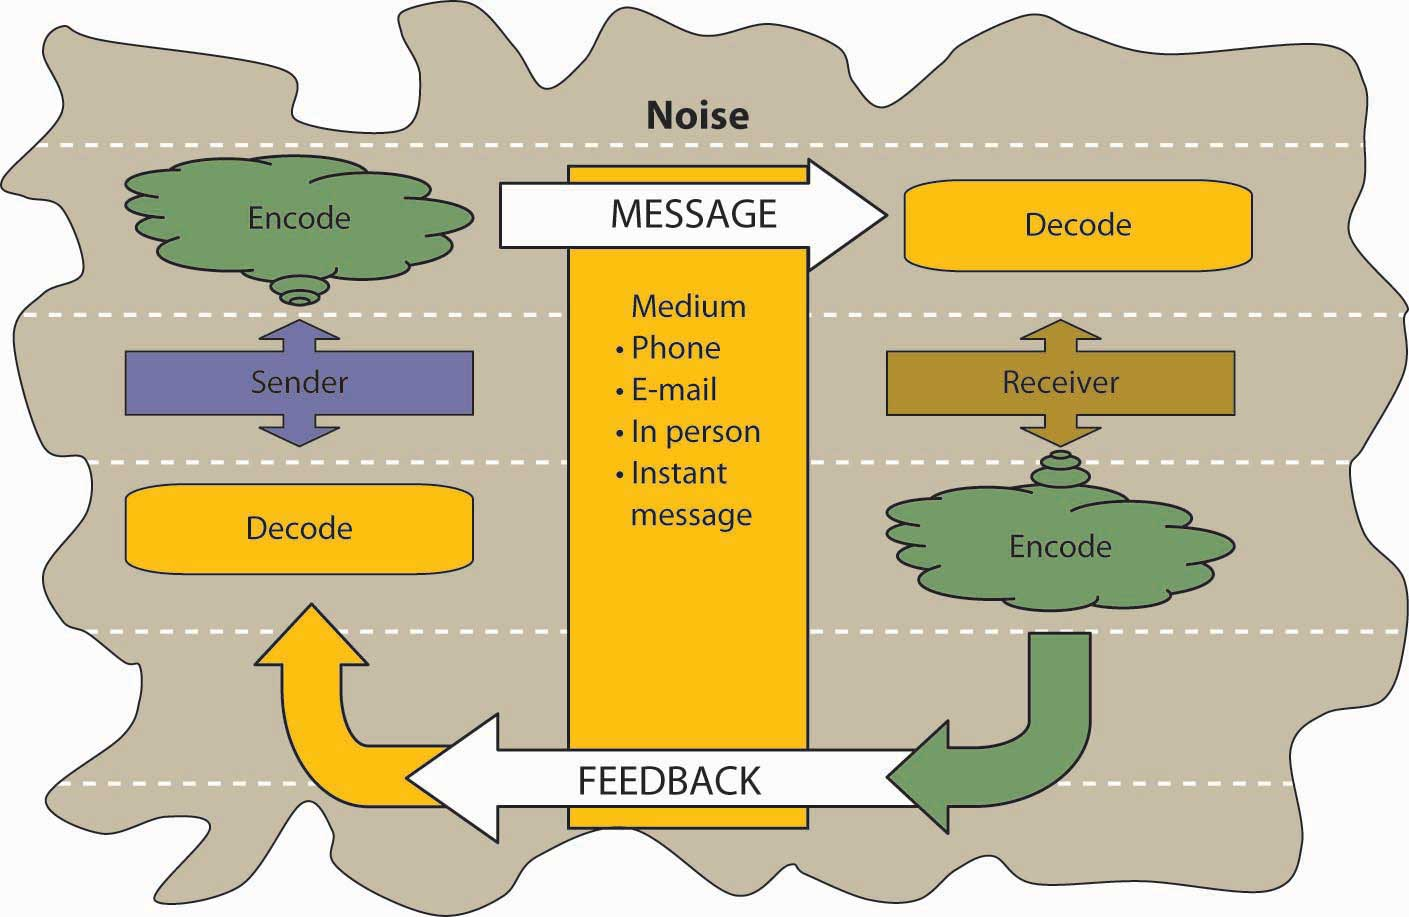 communication and message Decodes the message and gives the sender a feedback all forms of communication require a sender, a message, and an intended recipient, however the receiver need not.